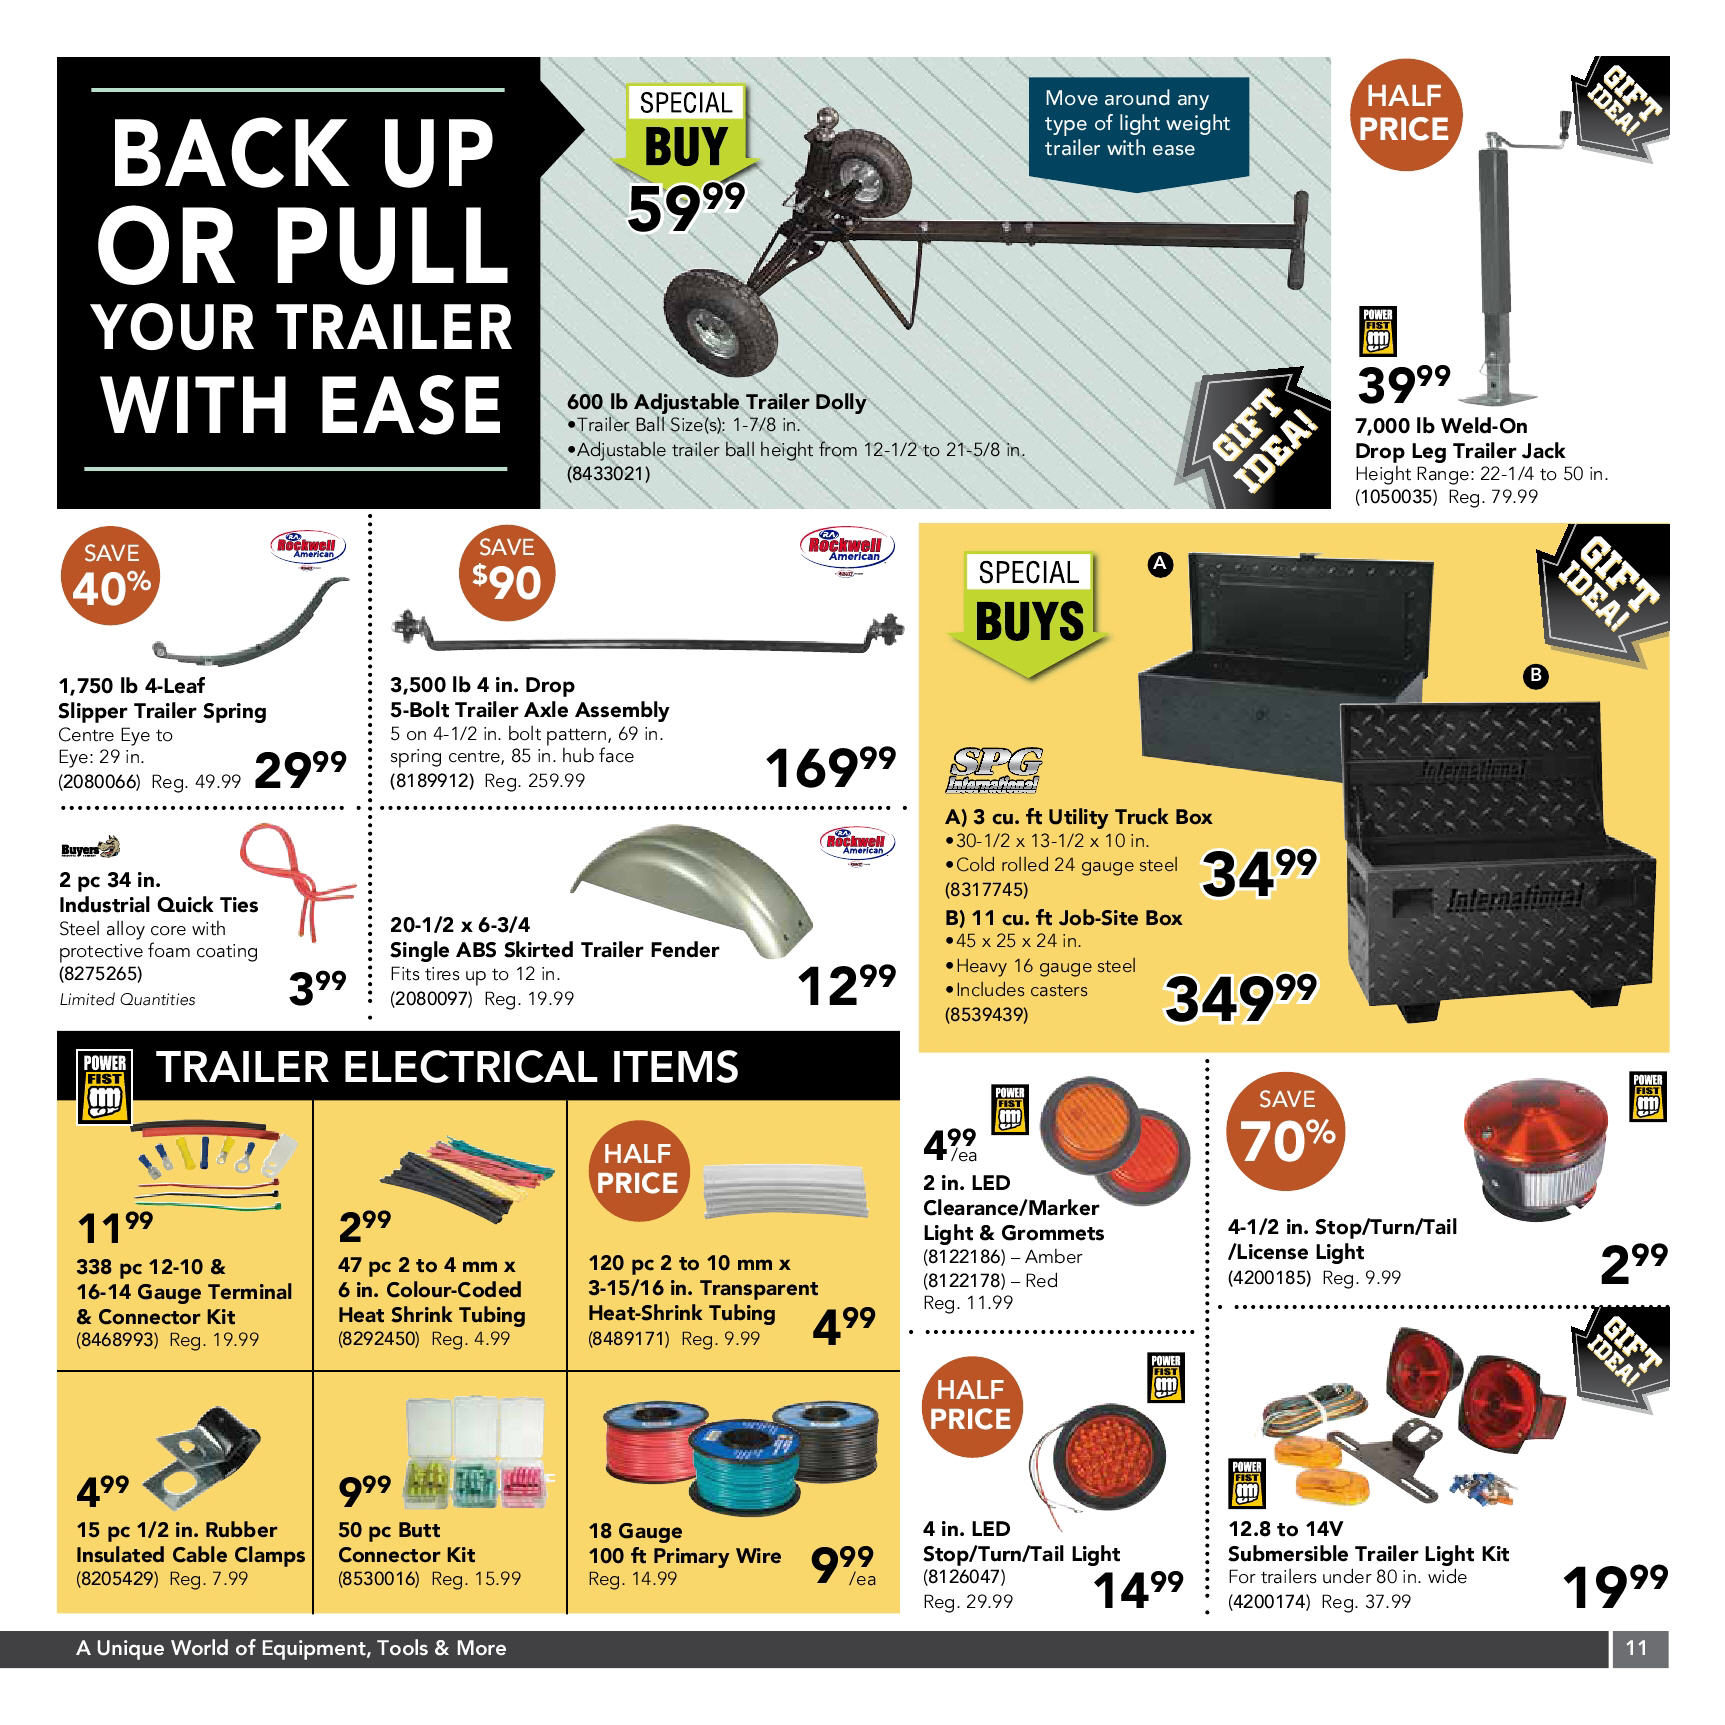 Princess Auto Weekly Flyer Fathers Day Savings Jun 10 Cat6 Structured Wiring With Two Panel Box Redflagdealscom Forums 22